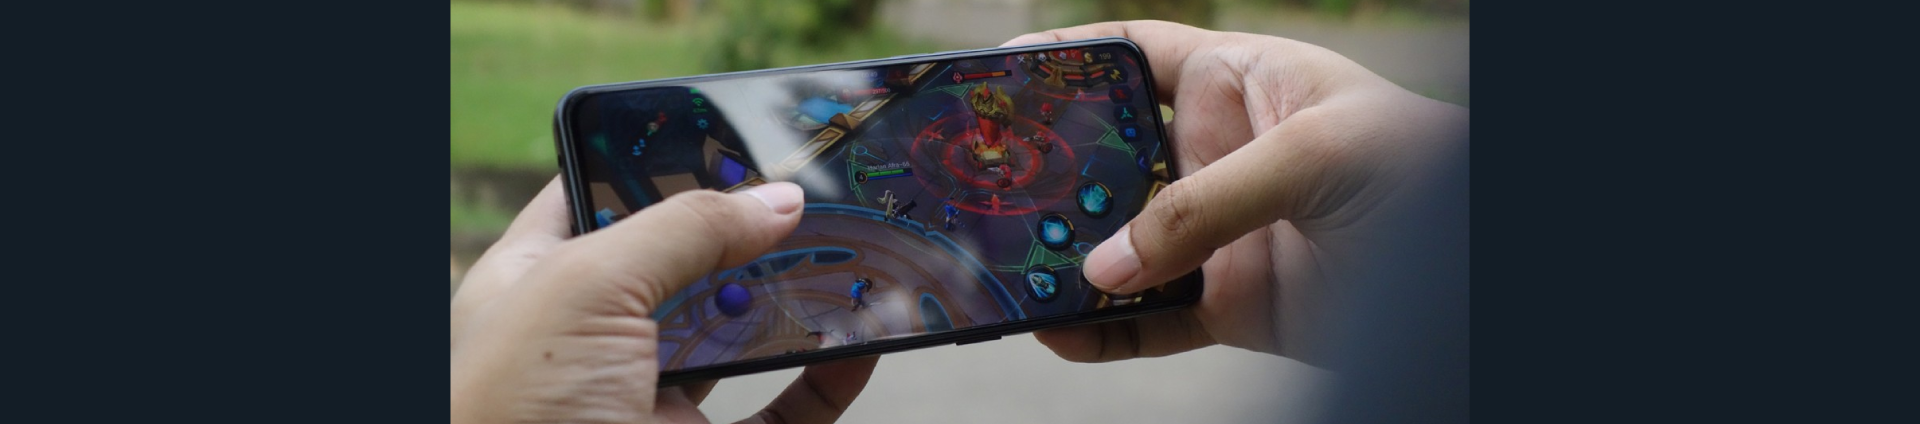 A person playing a mobile game